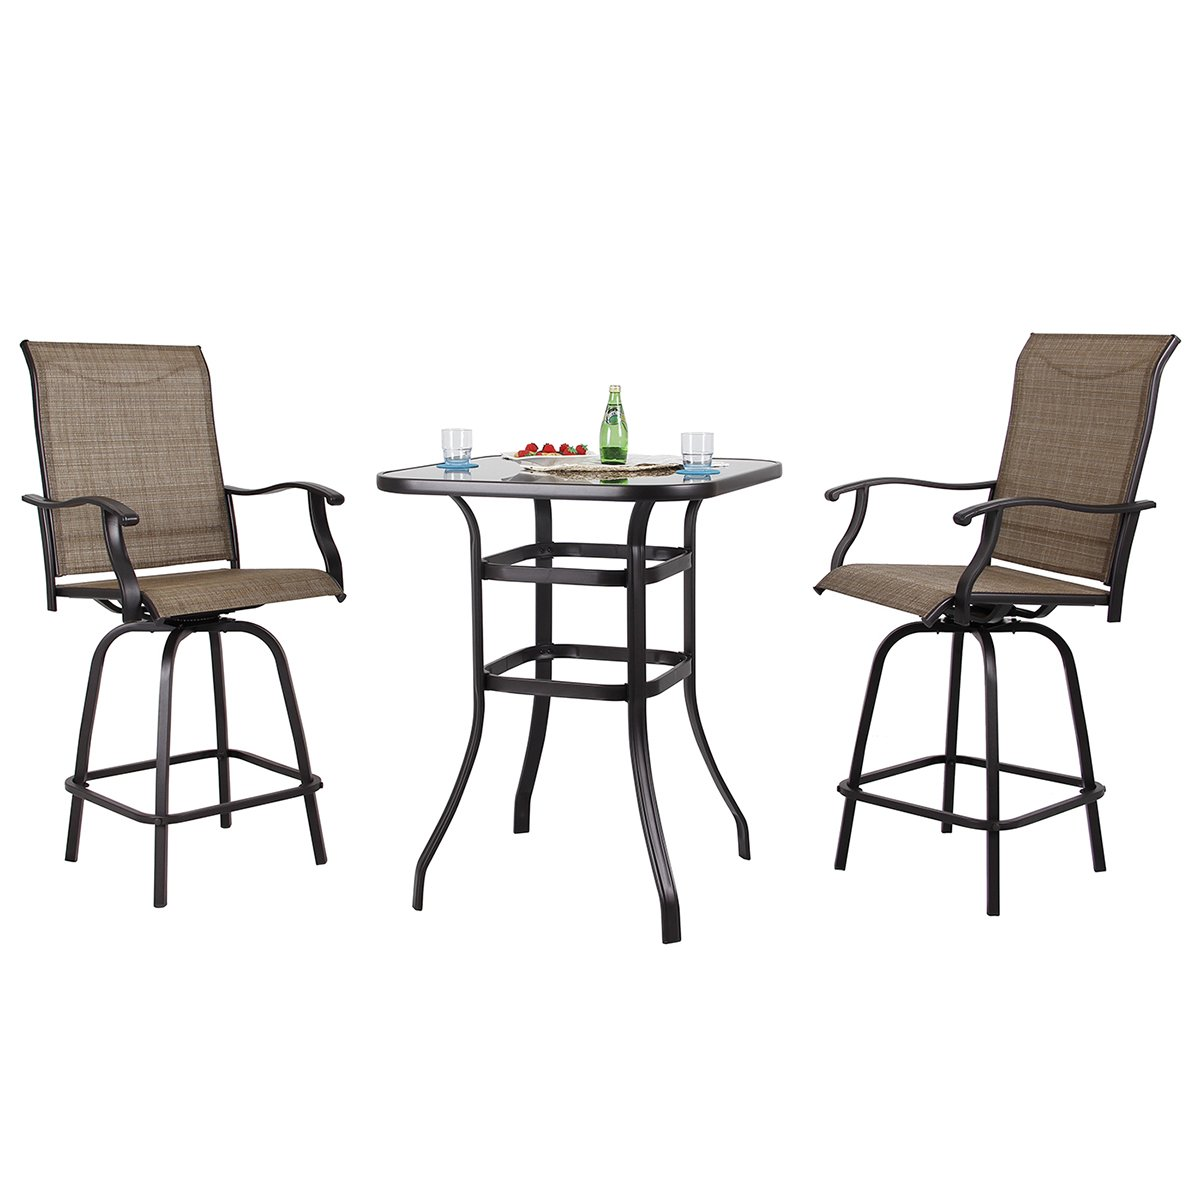 PHI VILLA Patio 3 PC Swivel Bar Sets Textilene High Bistro Sets, 2 Bar Stools and 1 Table, Brown by PHI VILLA